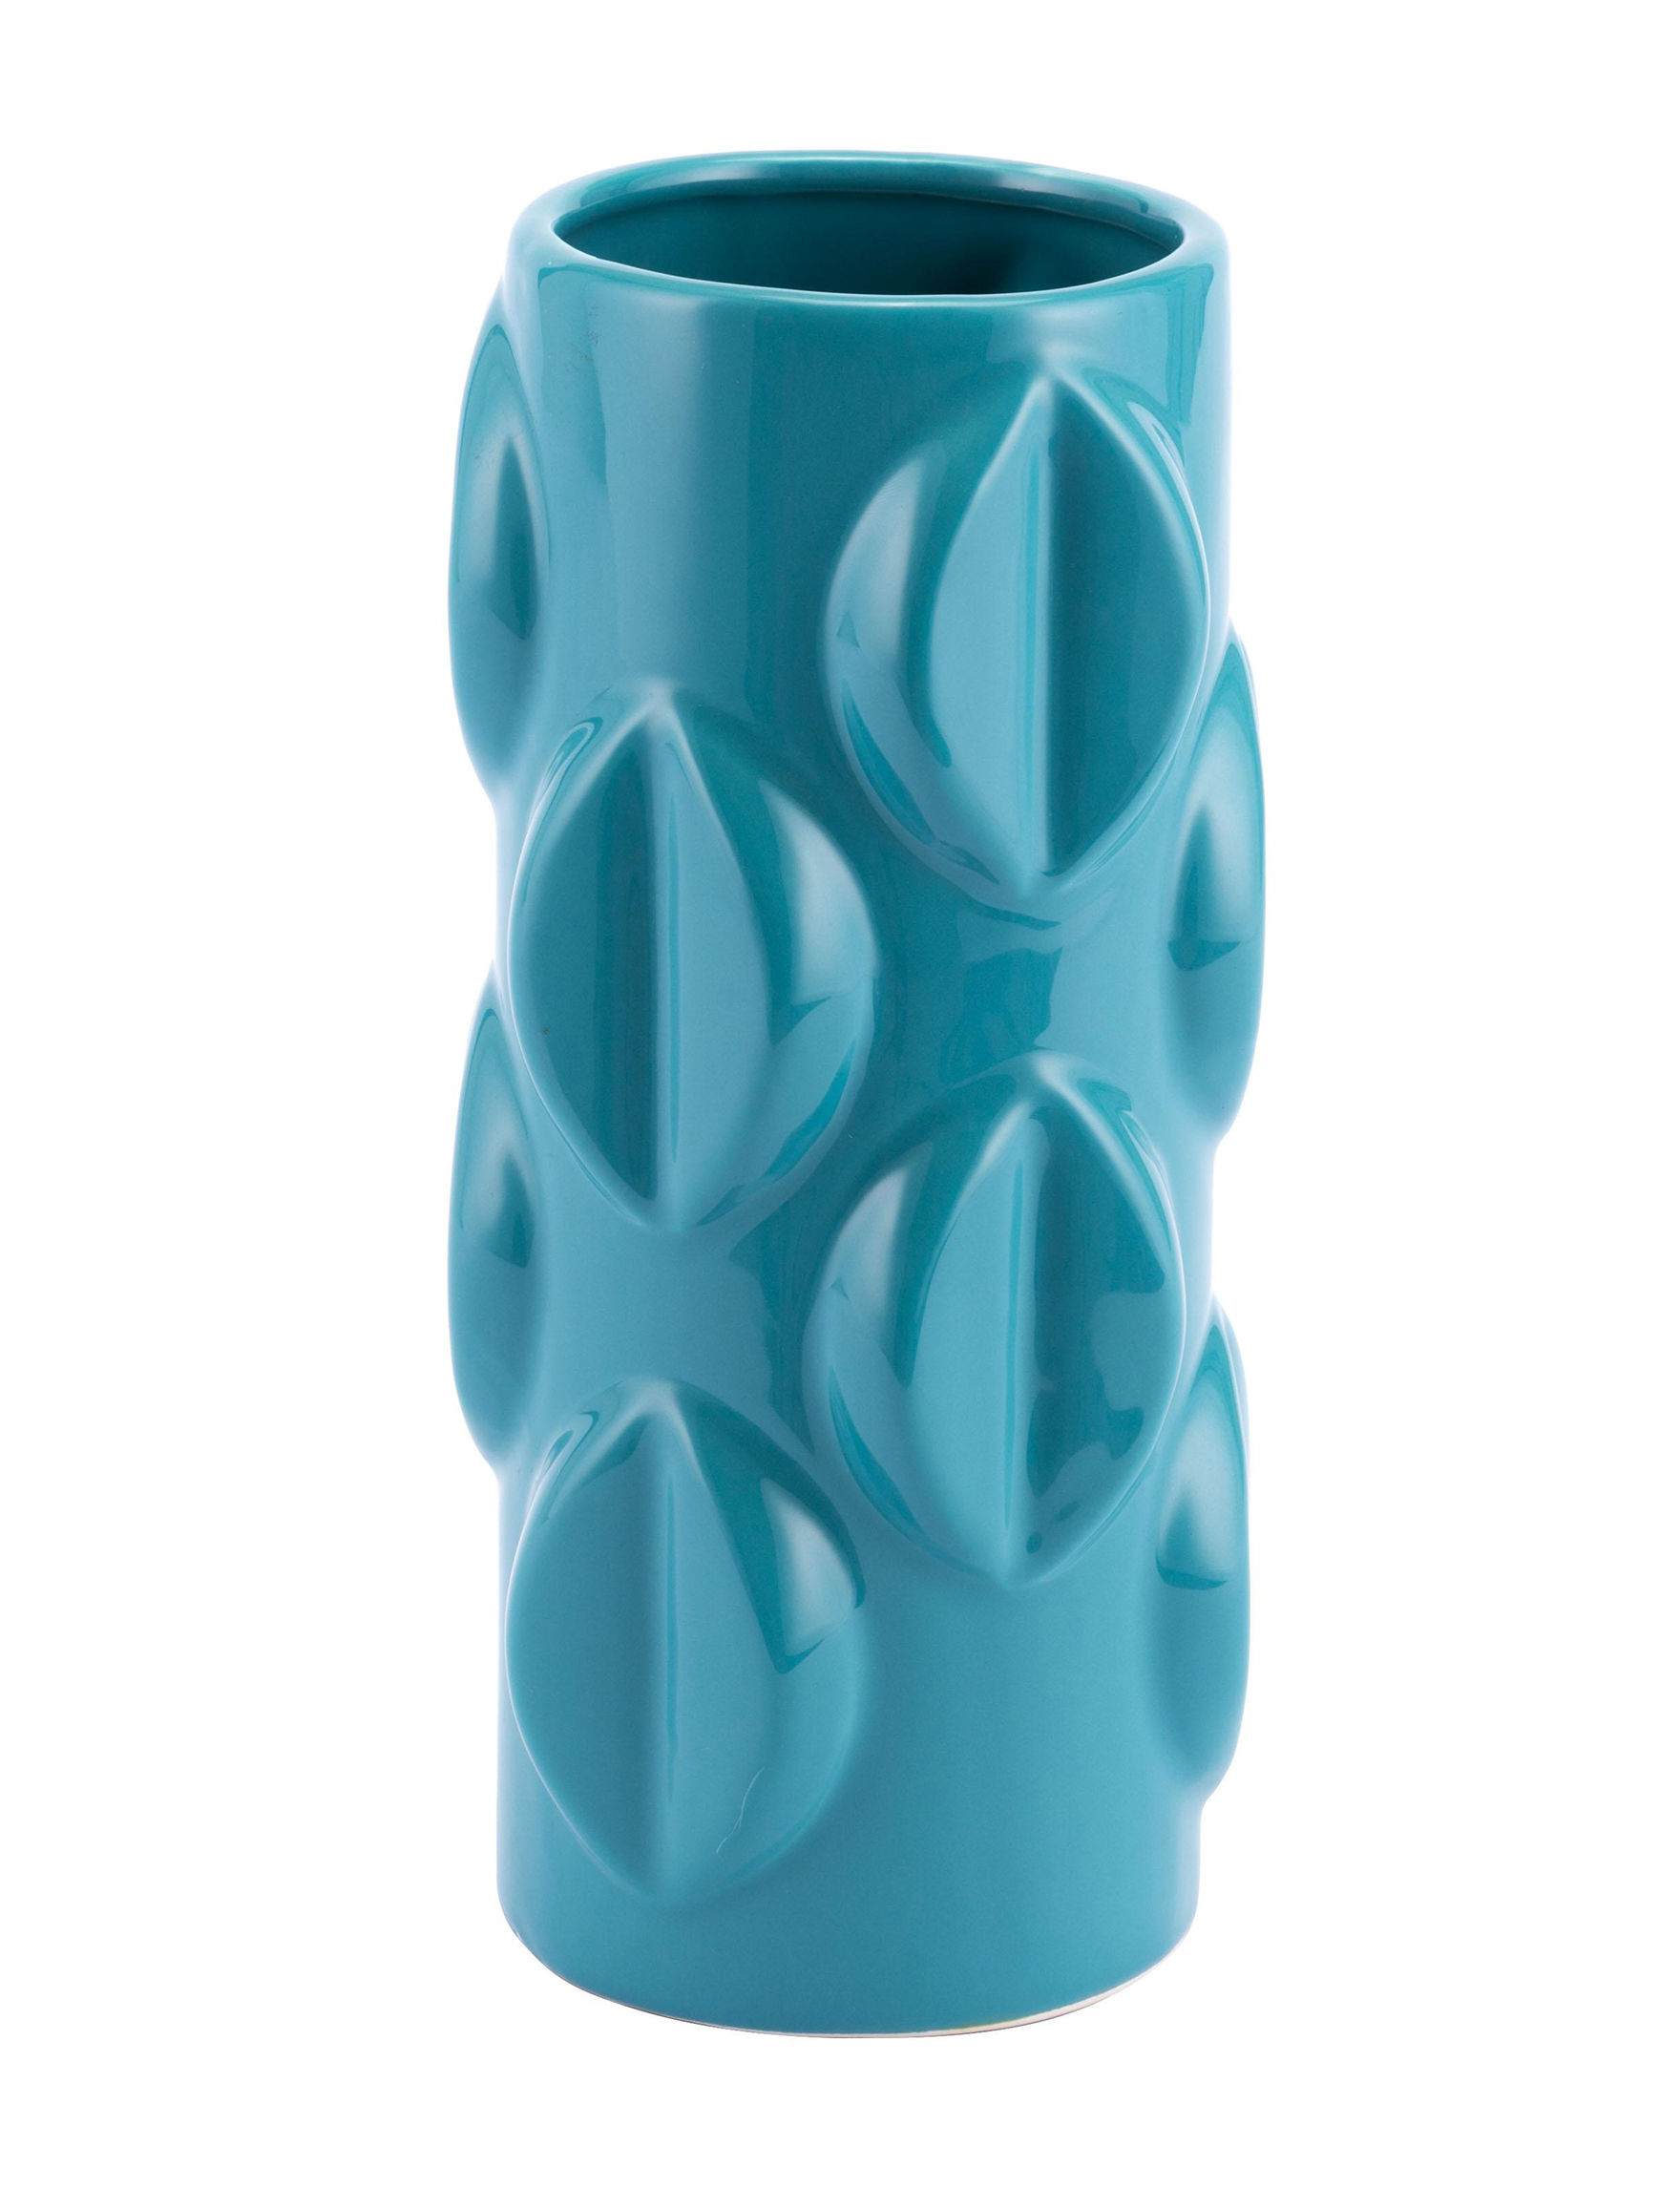 Zuo Modern Teal Vases & Decorative Bowls Home Accents